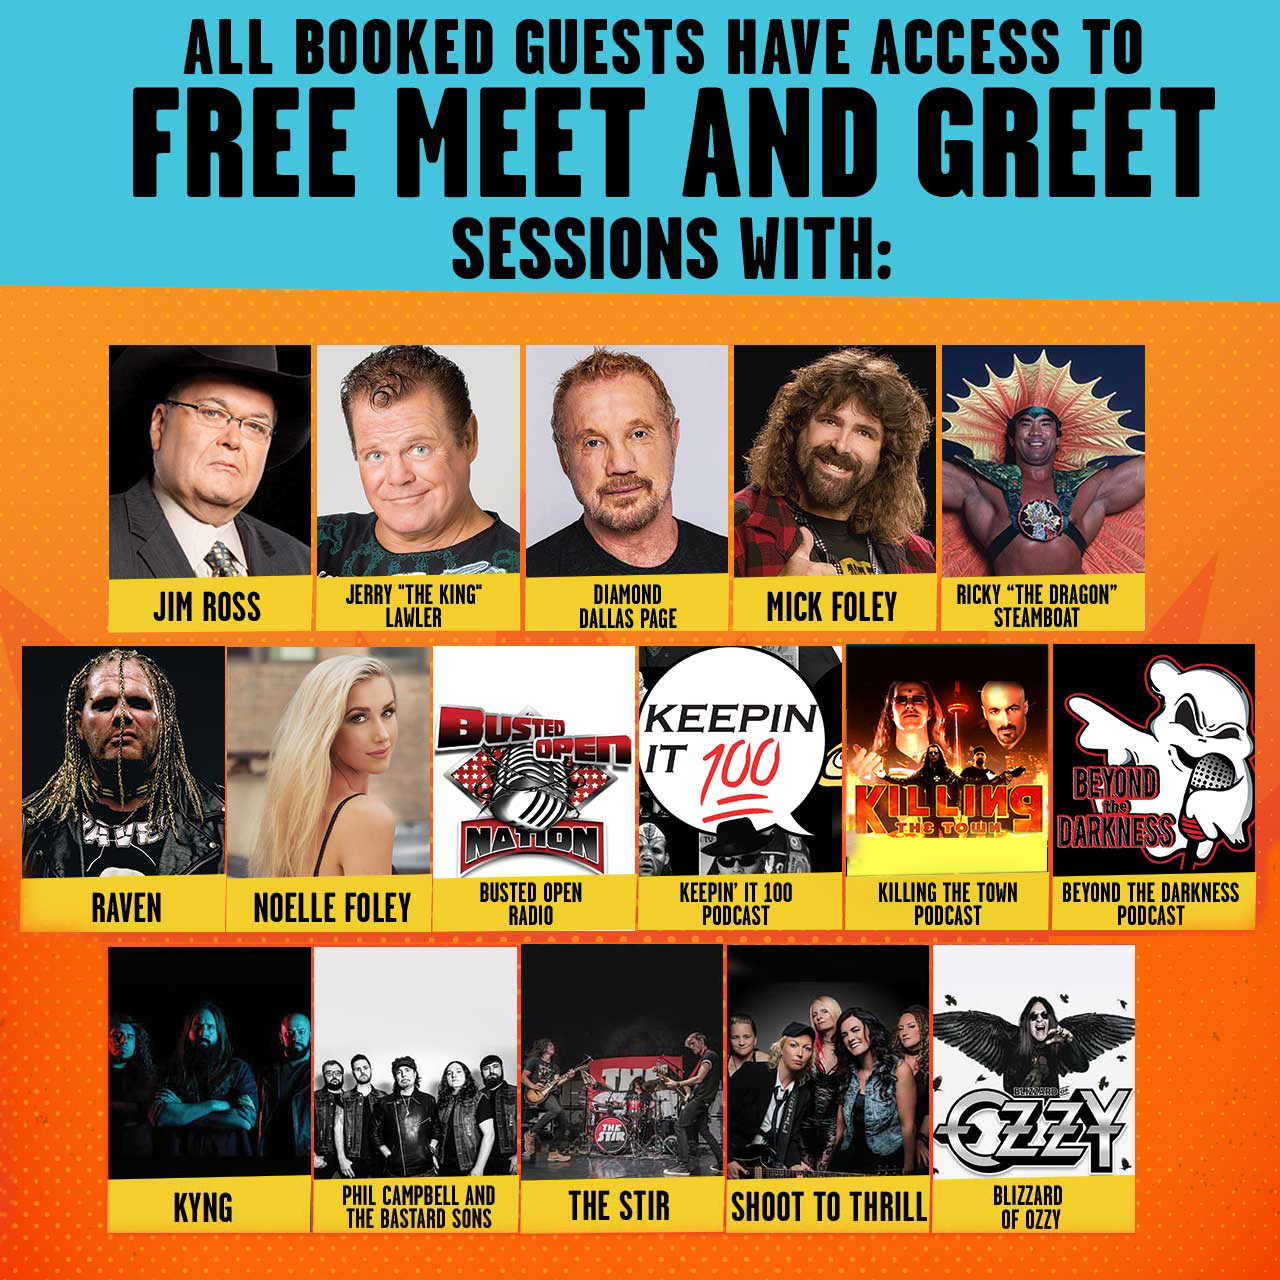 Meet Greet Sessions Chris Jericho Cruise